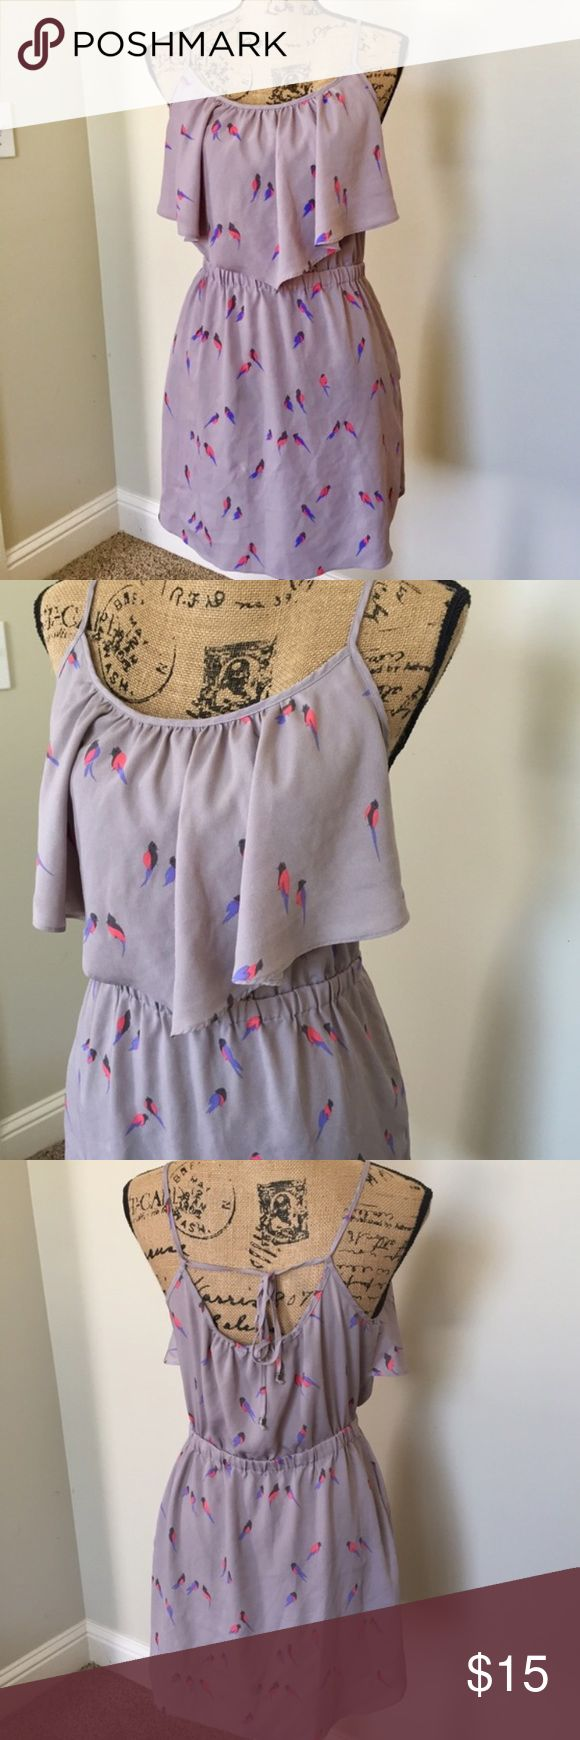 American Eagle AEO Bird Ruffle Dress American Eagle Outfitters dress with bird print. Gorgeous little piece and can be worn many ways. Size medium and in excellent condition with no flaws. ❌Trades/holds❌ I ship within 72 hours of your order. Poshmark rules only. Thank you for 👀! 🚭🐩 b1 American Eagle Outfitters Dresses Mini